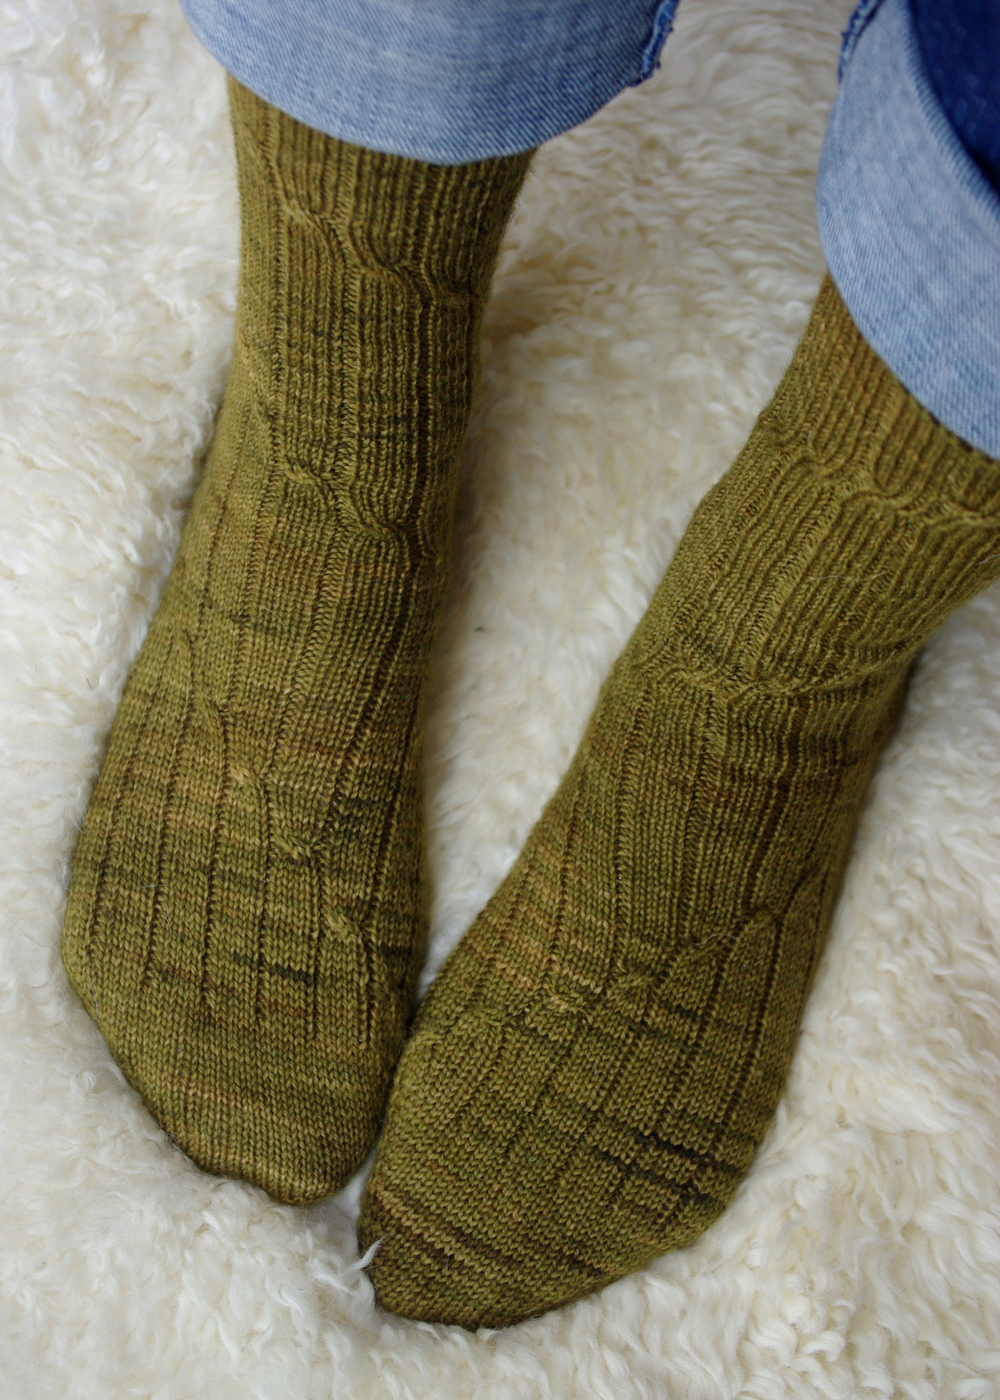 Barbe Socks, Designed by Leah B. Thibault for Ms. Cleaver Creations